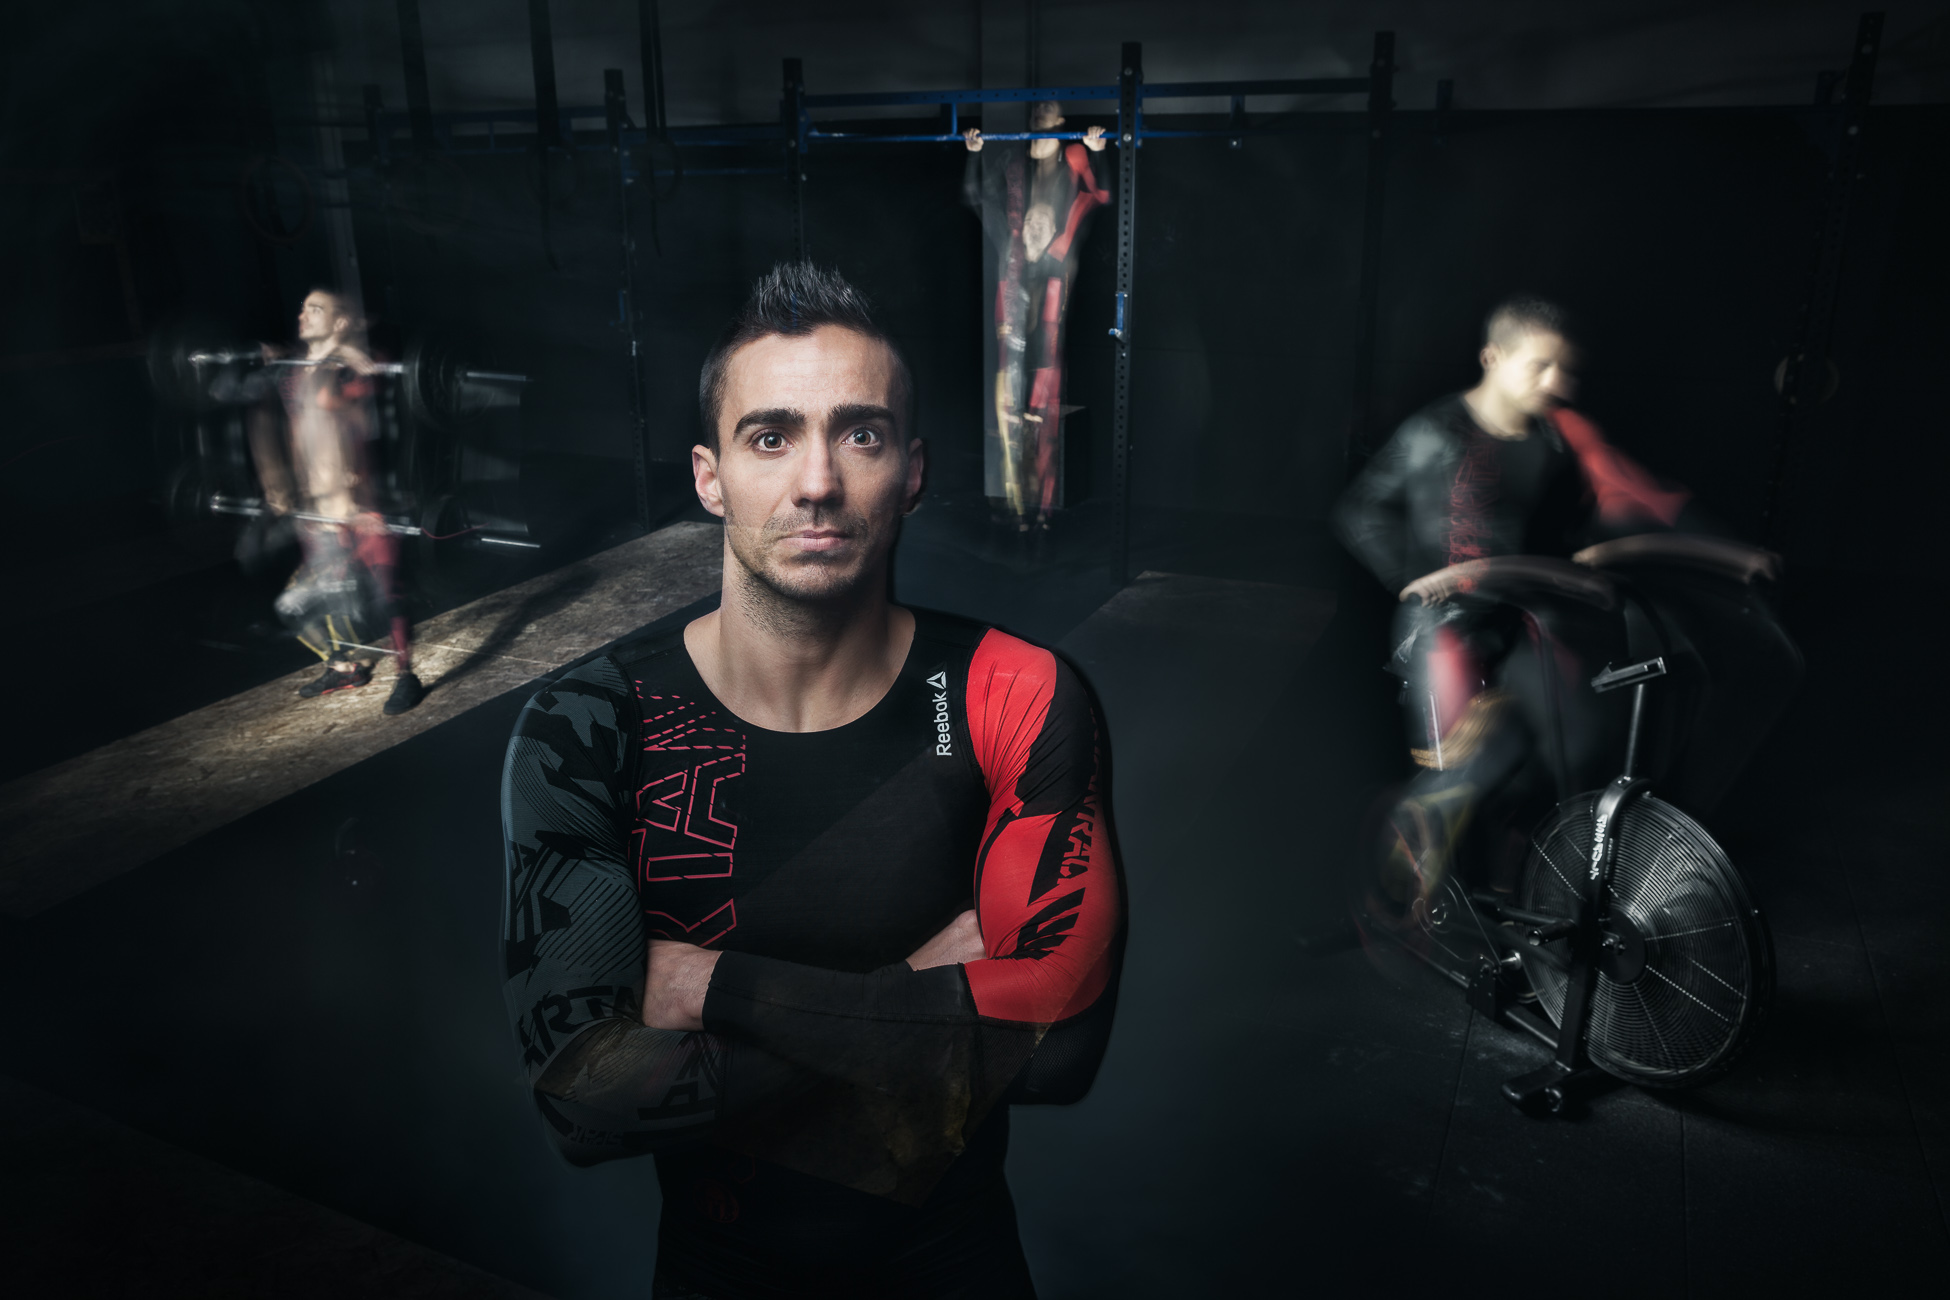 Gonçalo Barriga Photographer - Portrait of Crossfit Athlete in Action